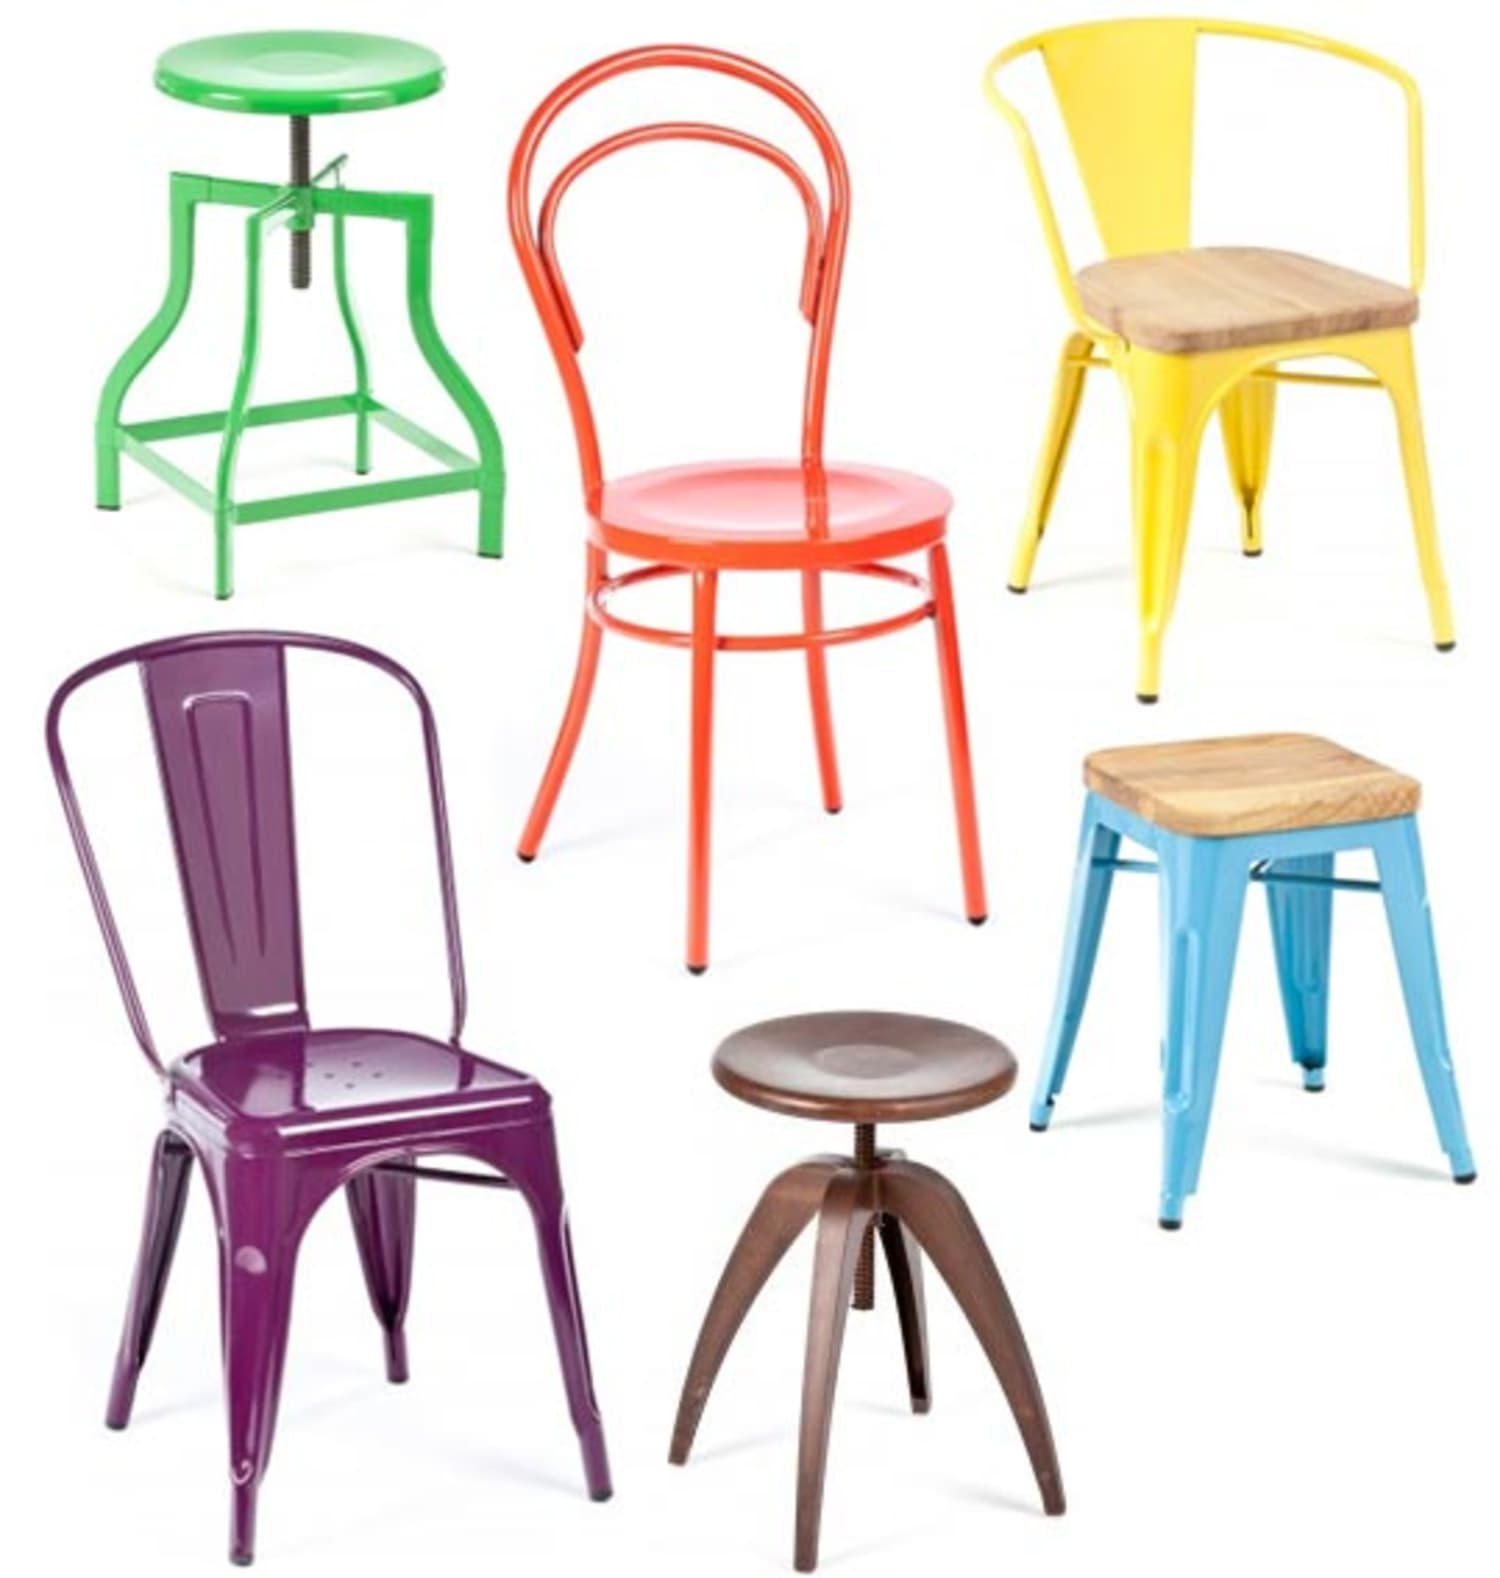 Colorful Dining Chair: Industry West: Colorful (and Totally Affordable!) Metal